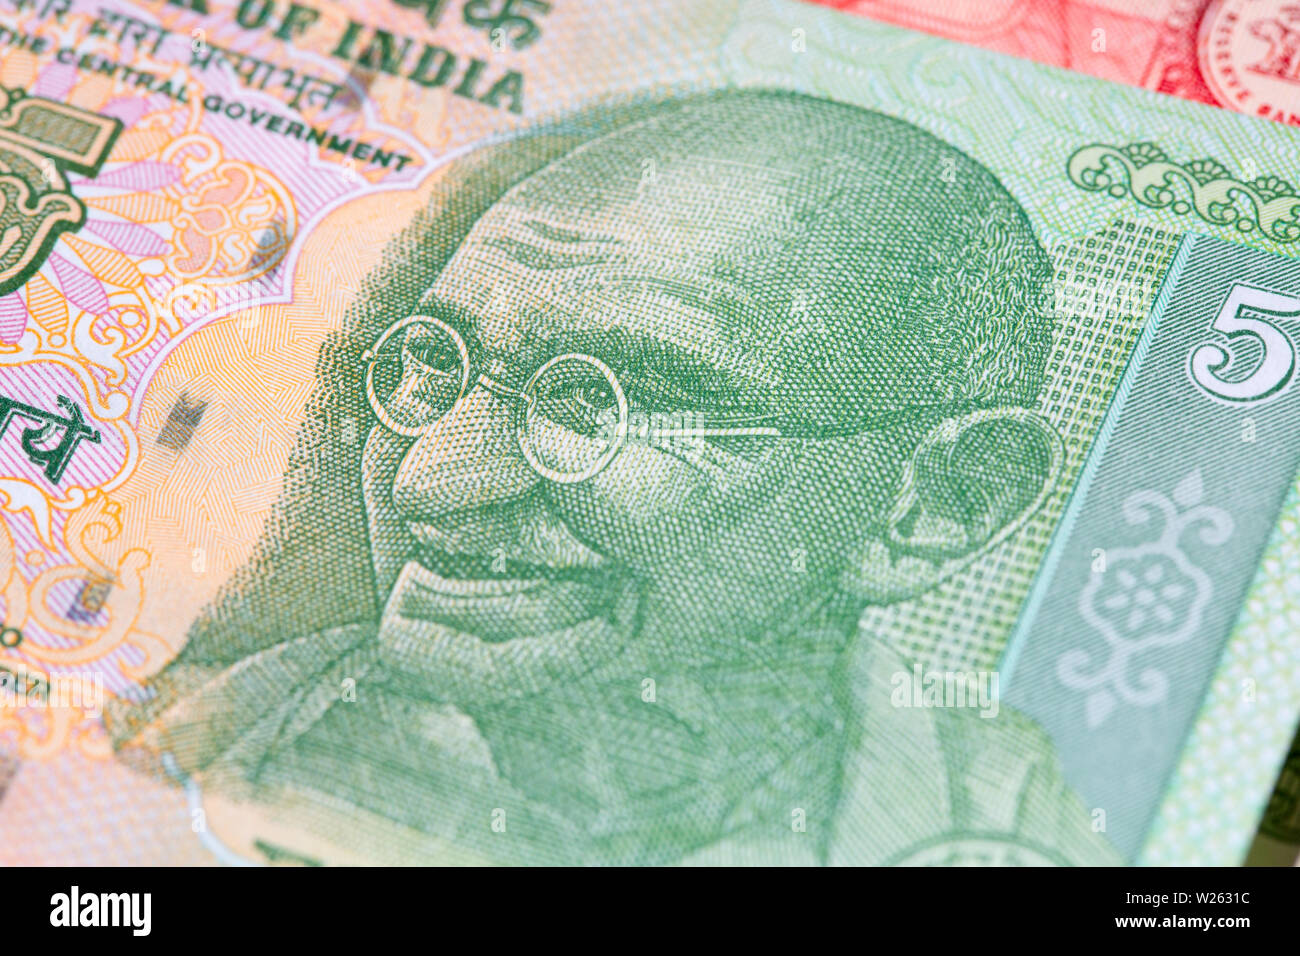 Collection of the Indian banknotes - Stock Image